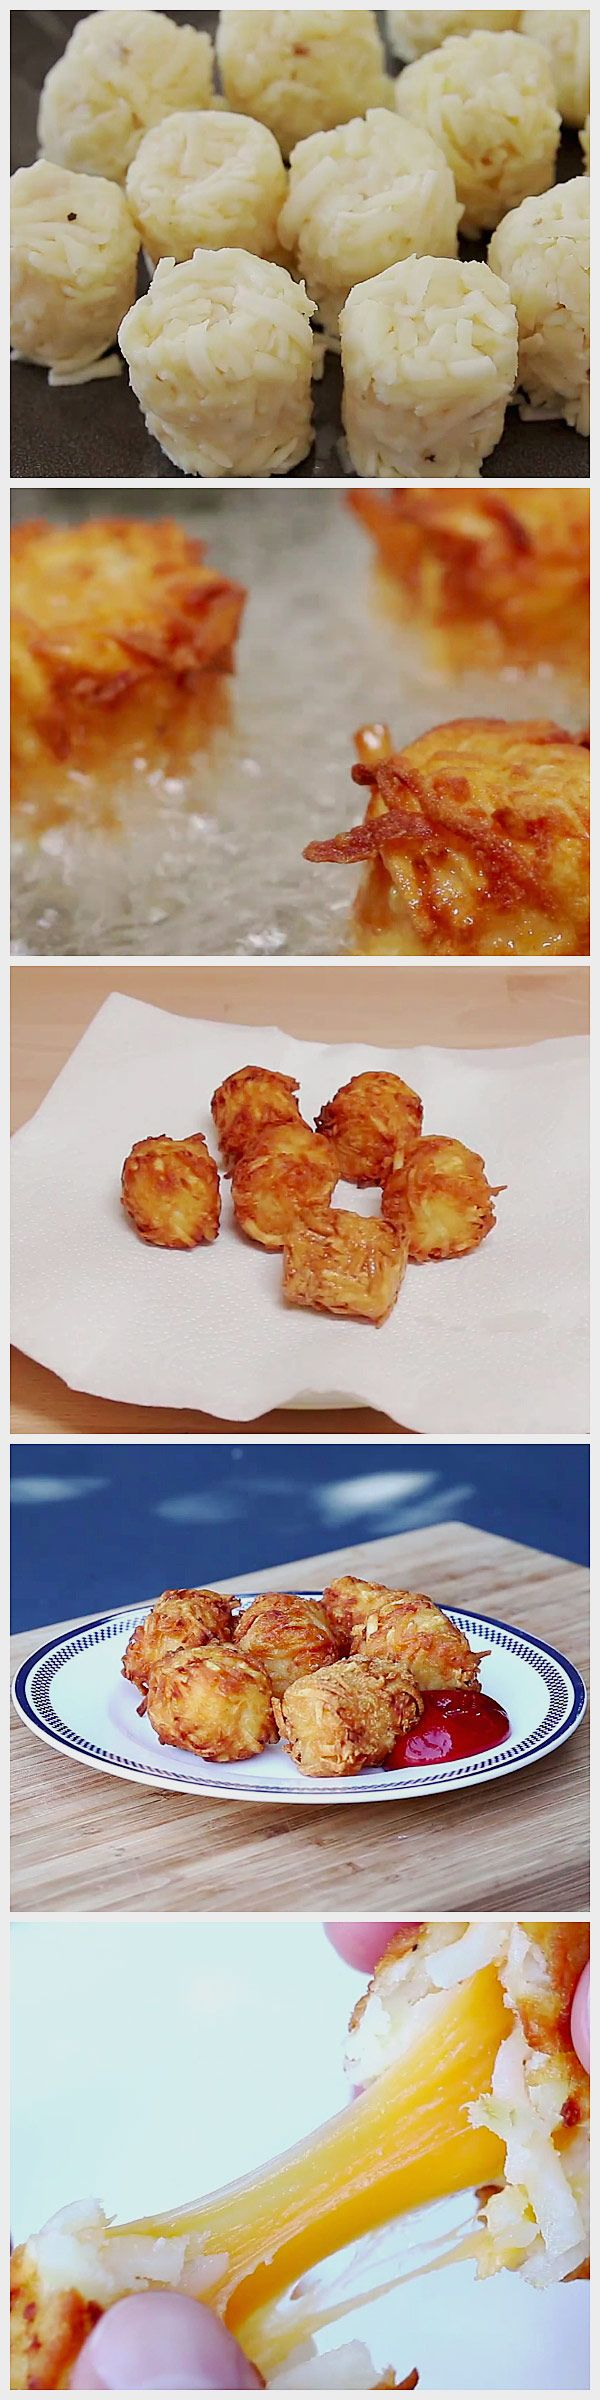 Cheese-Stuffed Tater Tots That Will Change Your Entire Life And How You Think…